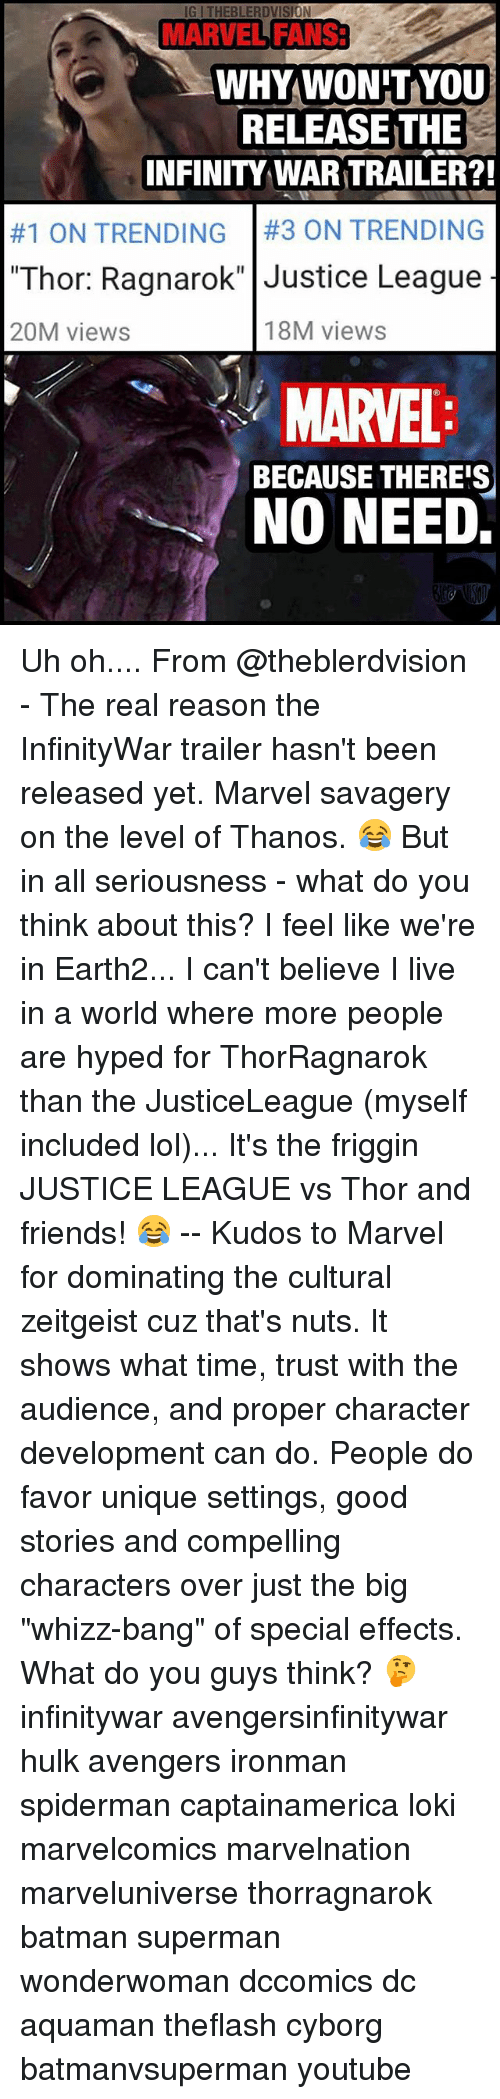 """Lokie: IG I THEBLERDVISION  MARVEL FANS3  MARVEL FANS  WHYWON'TYoU  RELEASE THE  INFINITY WAR TRAILER?!  #1 ON TRENDING 